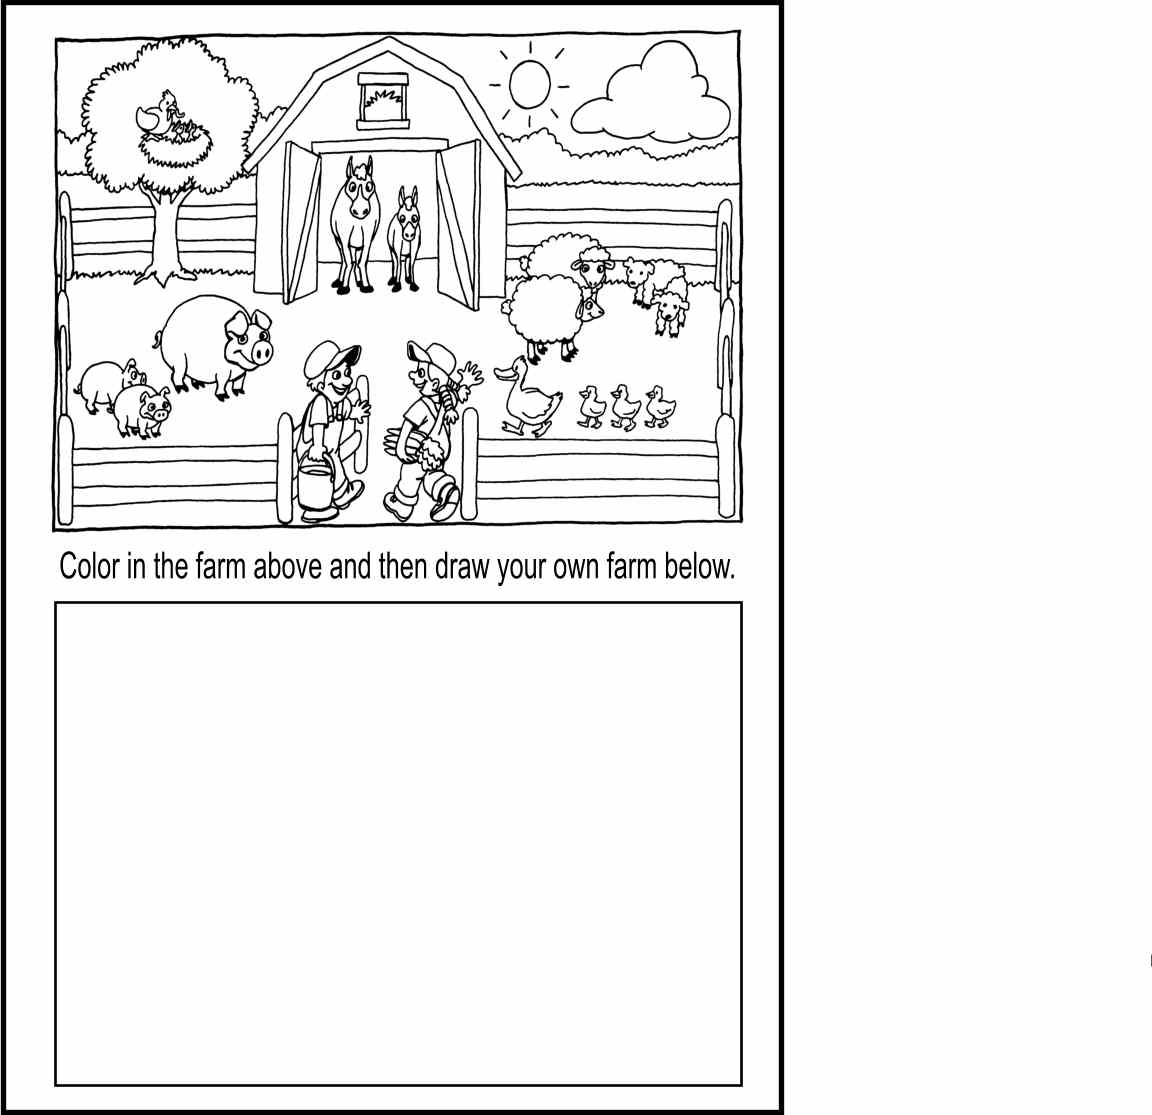 8 Best Images of Rectangle Worksheets For Kindergarten